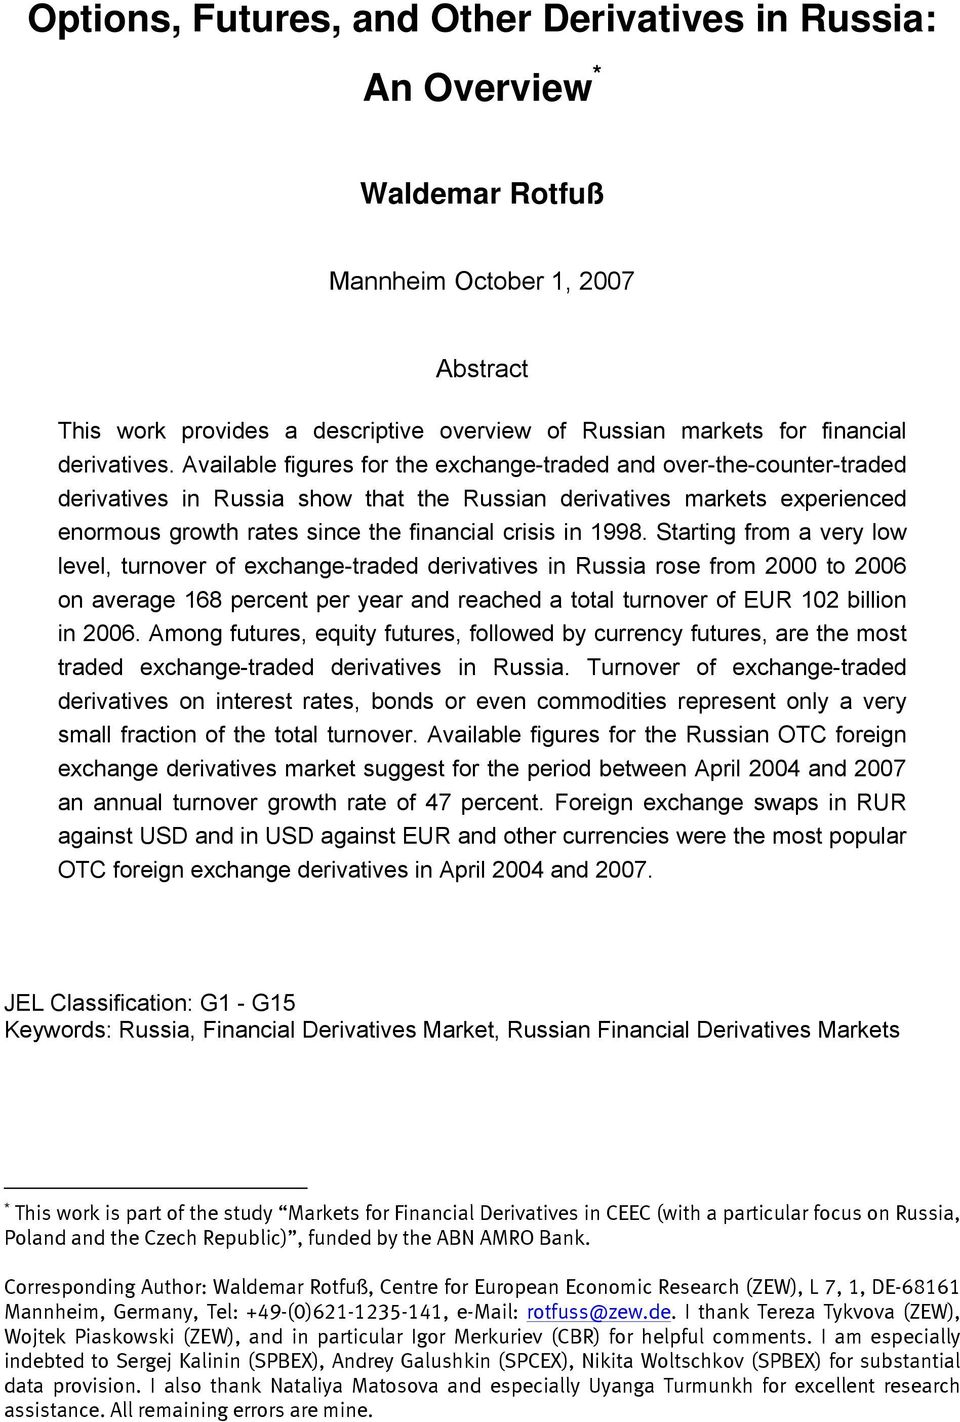 Available figures for the exchange-traded and over-the-counter-traded derivatives in Russia show that the Russian derivatives markets experienced enormous growth rates since the financial crisis in